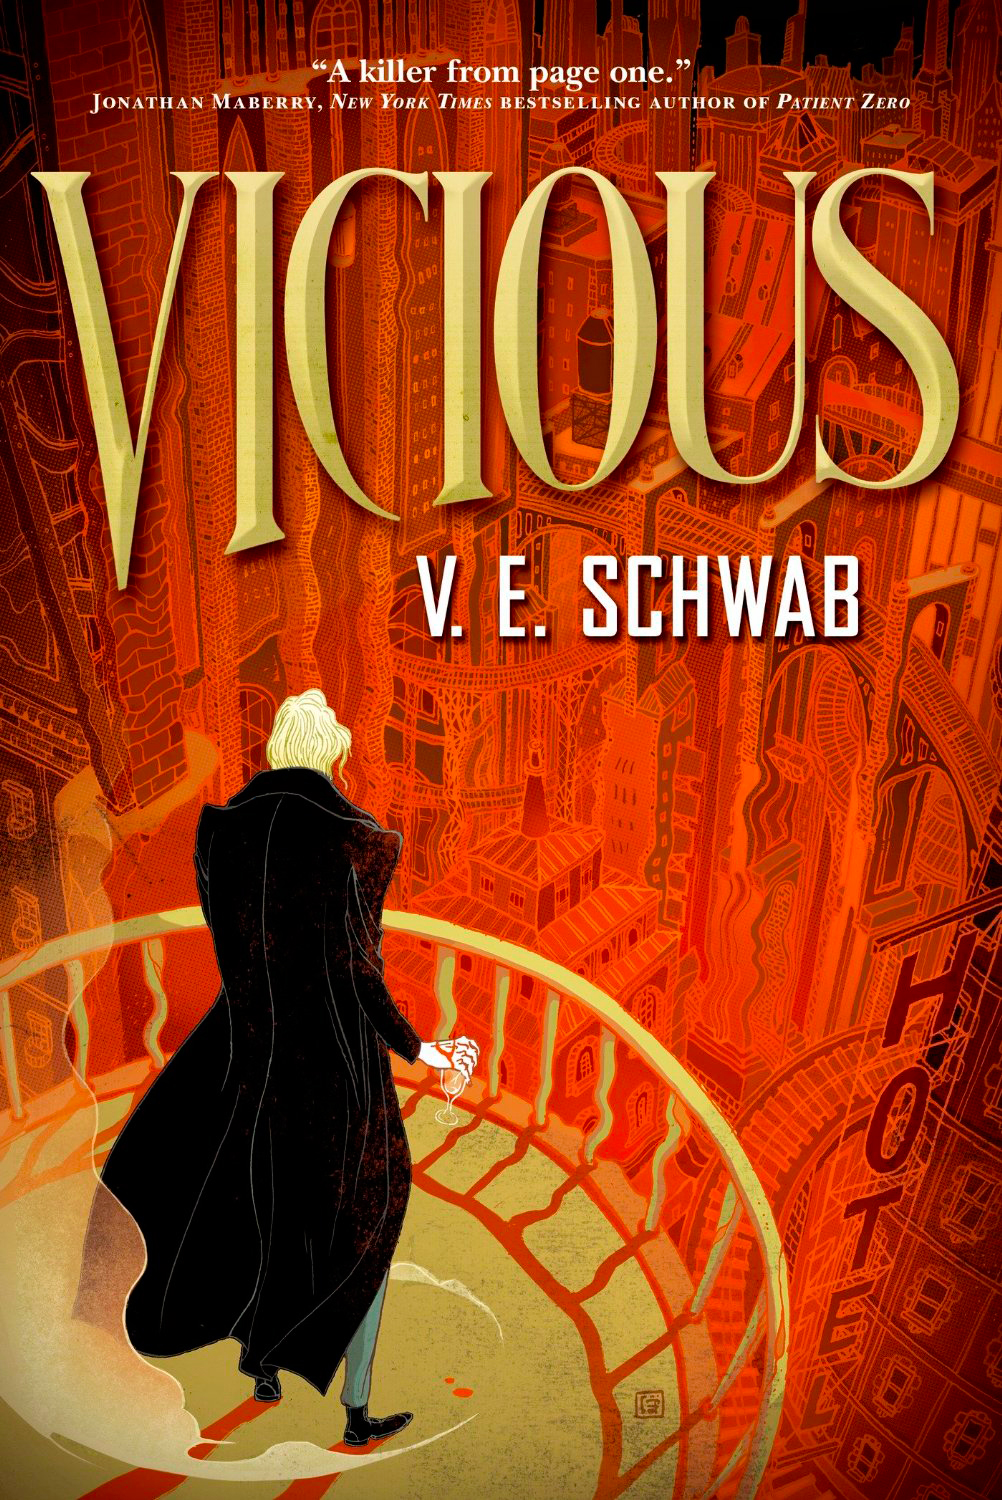 Vicious by V.E. Schwab